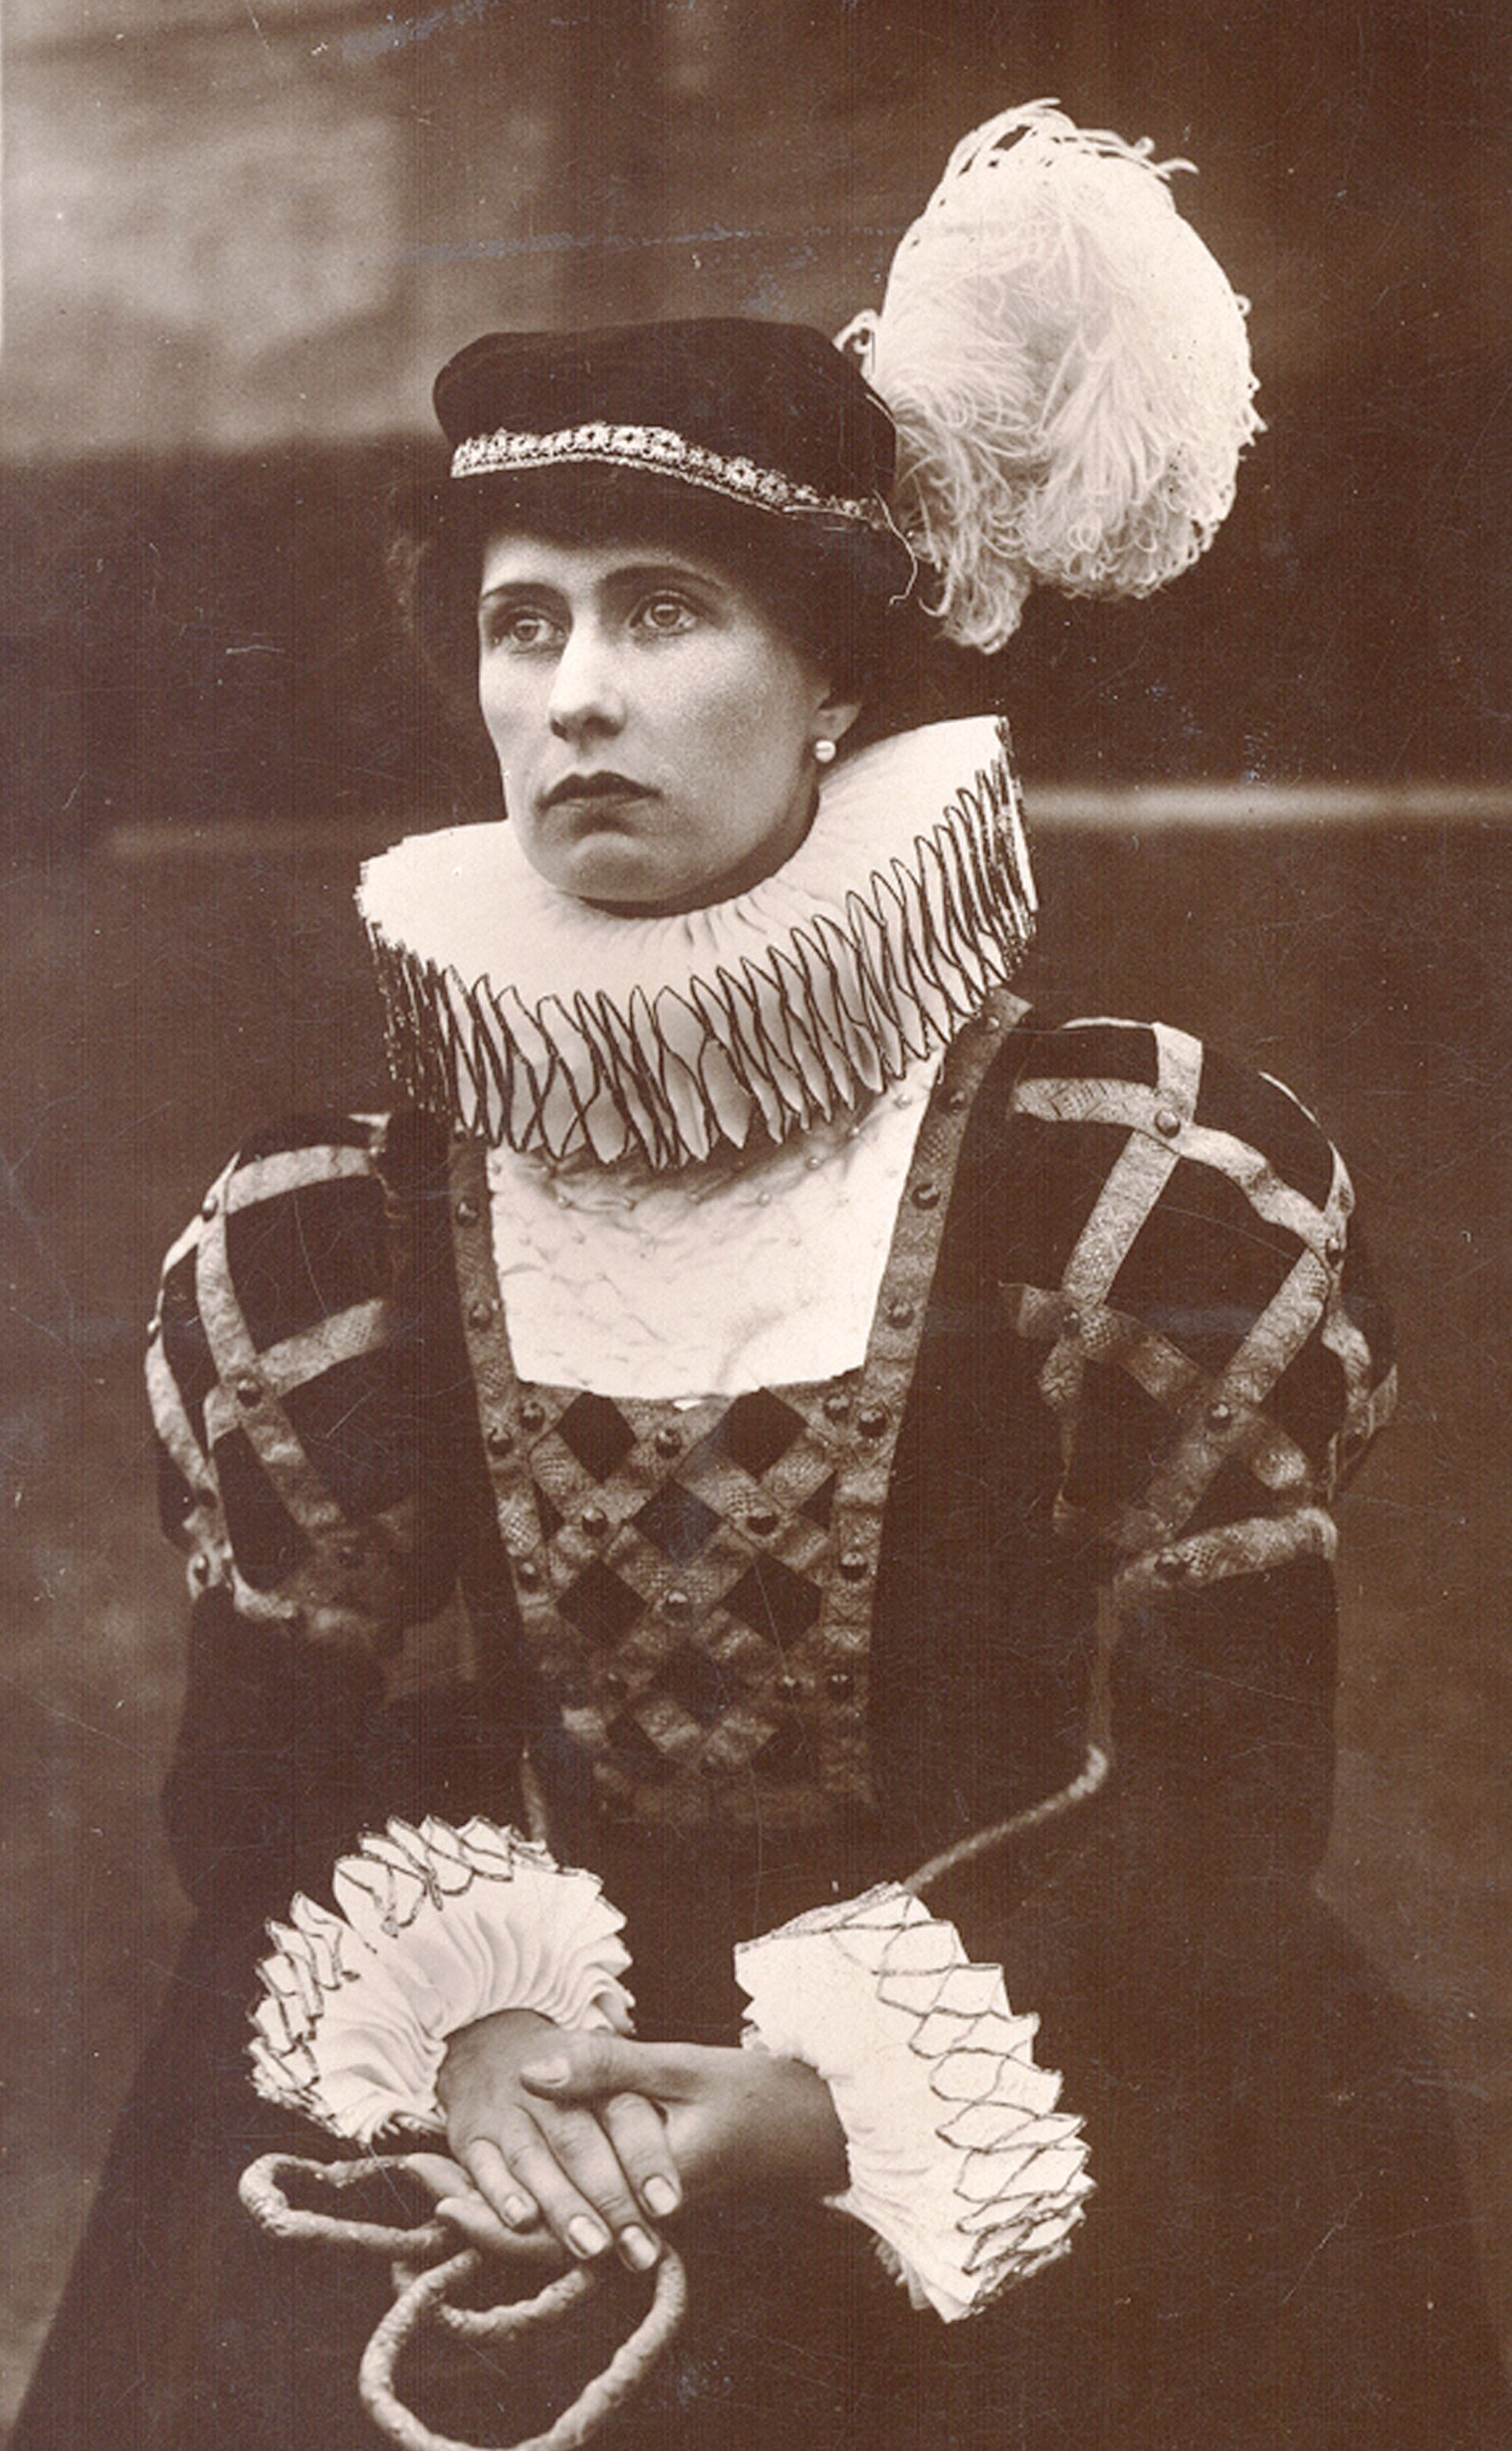 Lady Carlisle in the role of Mary Queen of Scots at the Carlisle Pageant, 1928